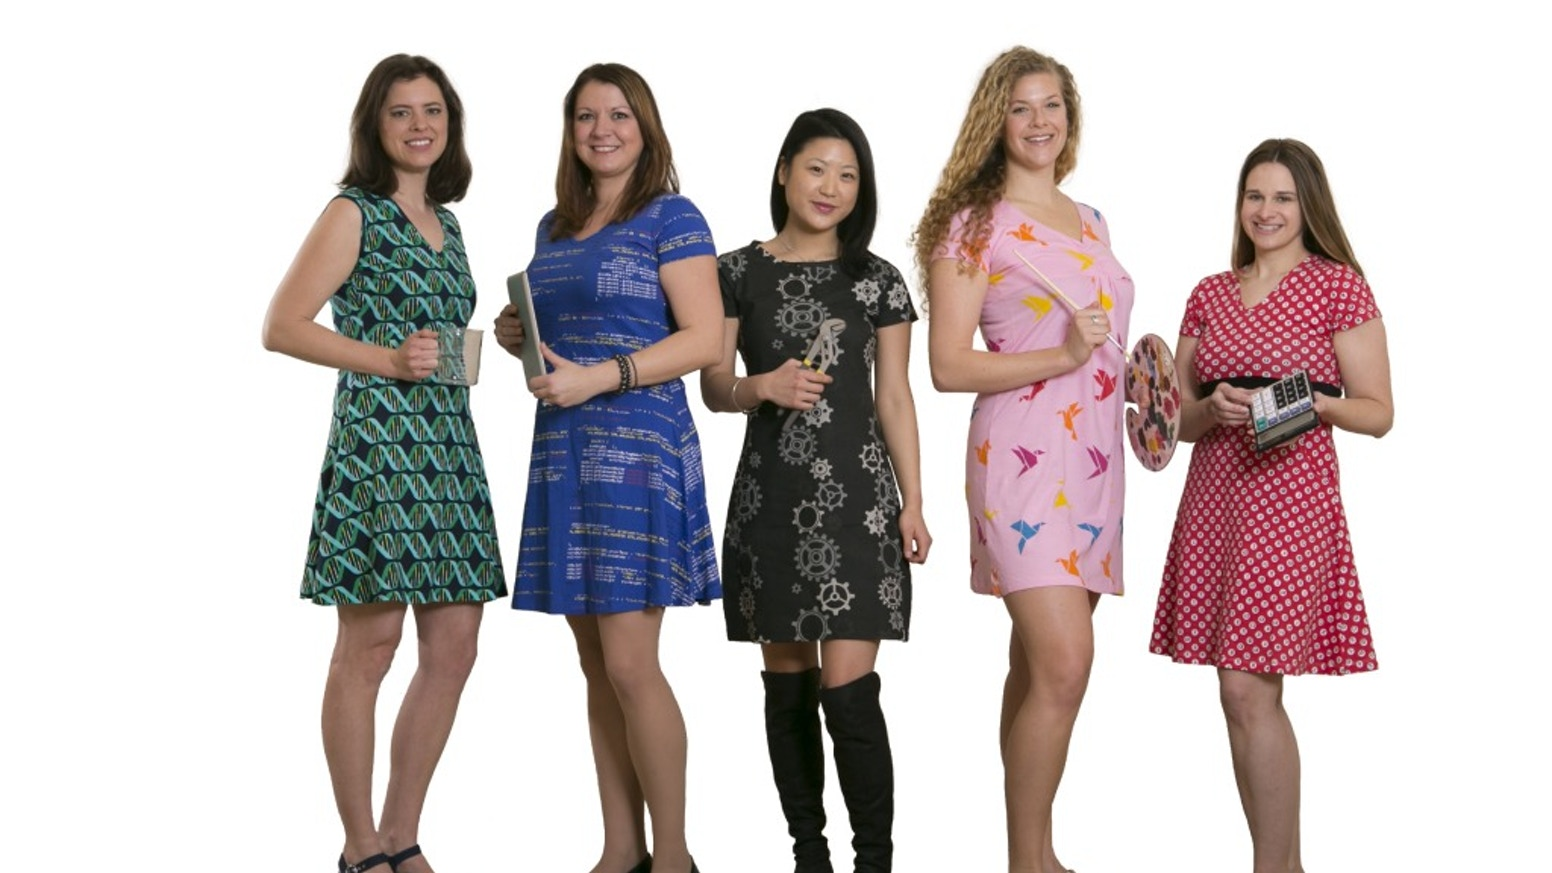 Fun dresses to prove that women who love Science & Technology  can still be feminine & stylish! Our hypothesis - you will love them!